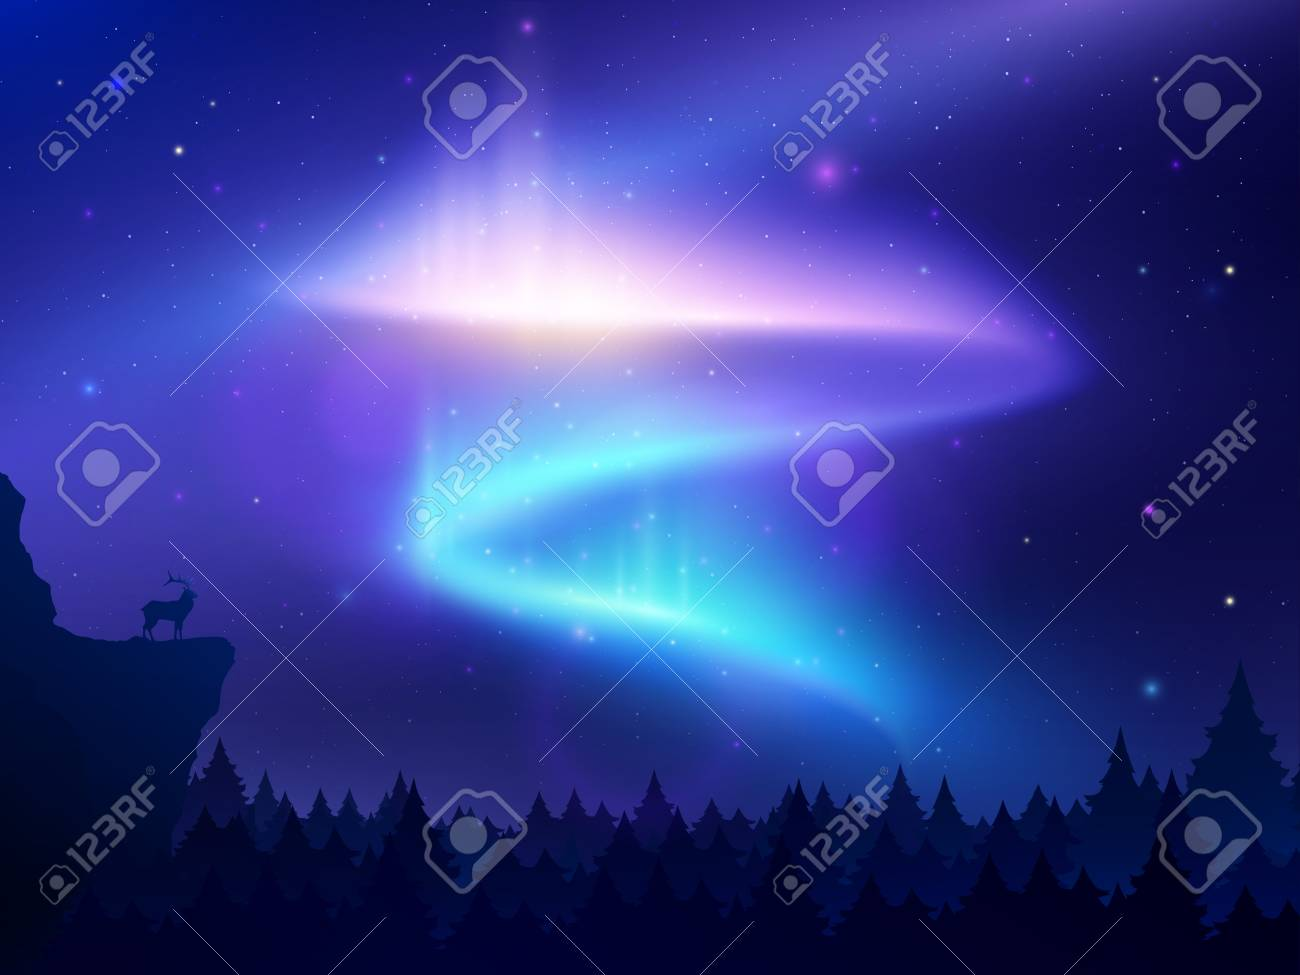 Realistic background with northern lights in night sky over forest and mountain vector illustration - 114227068